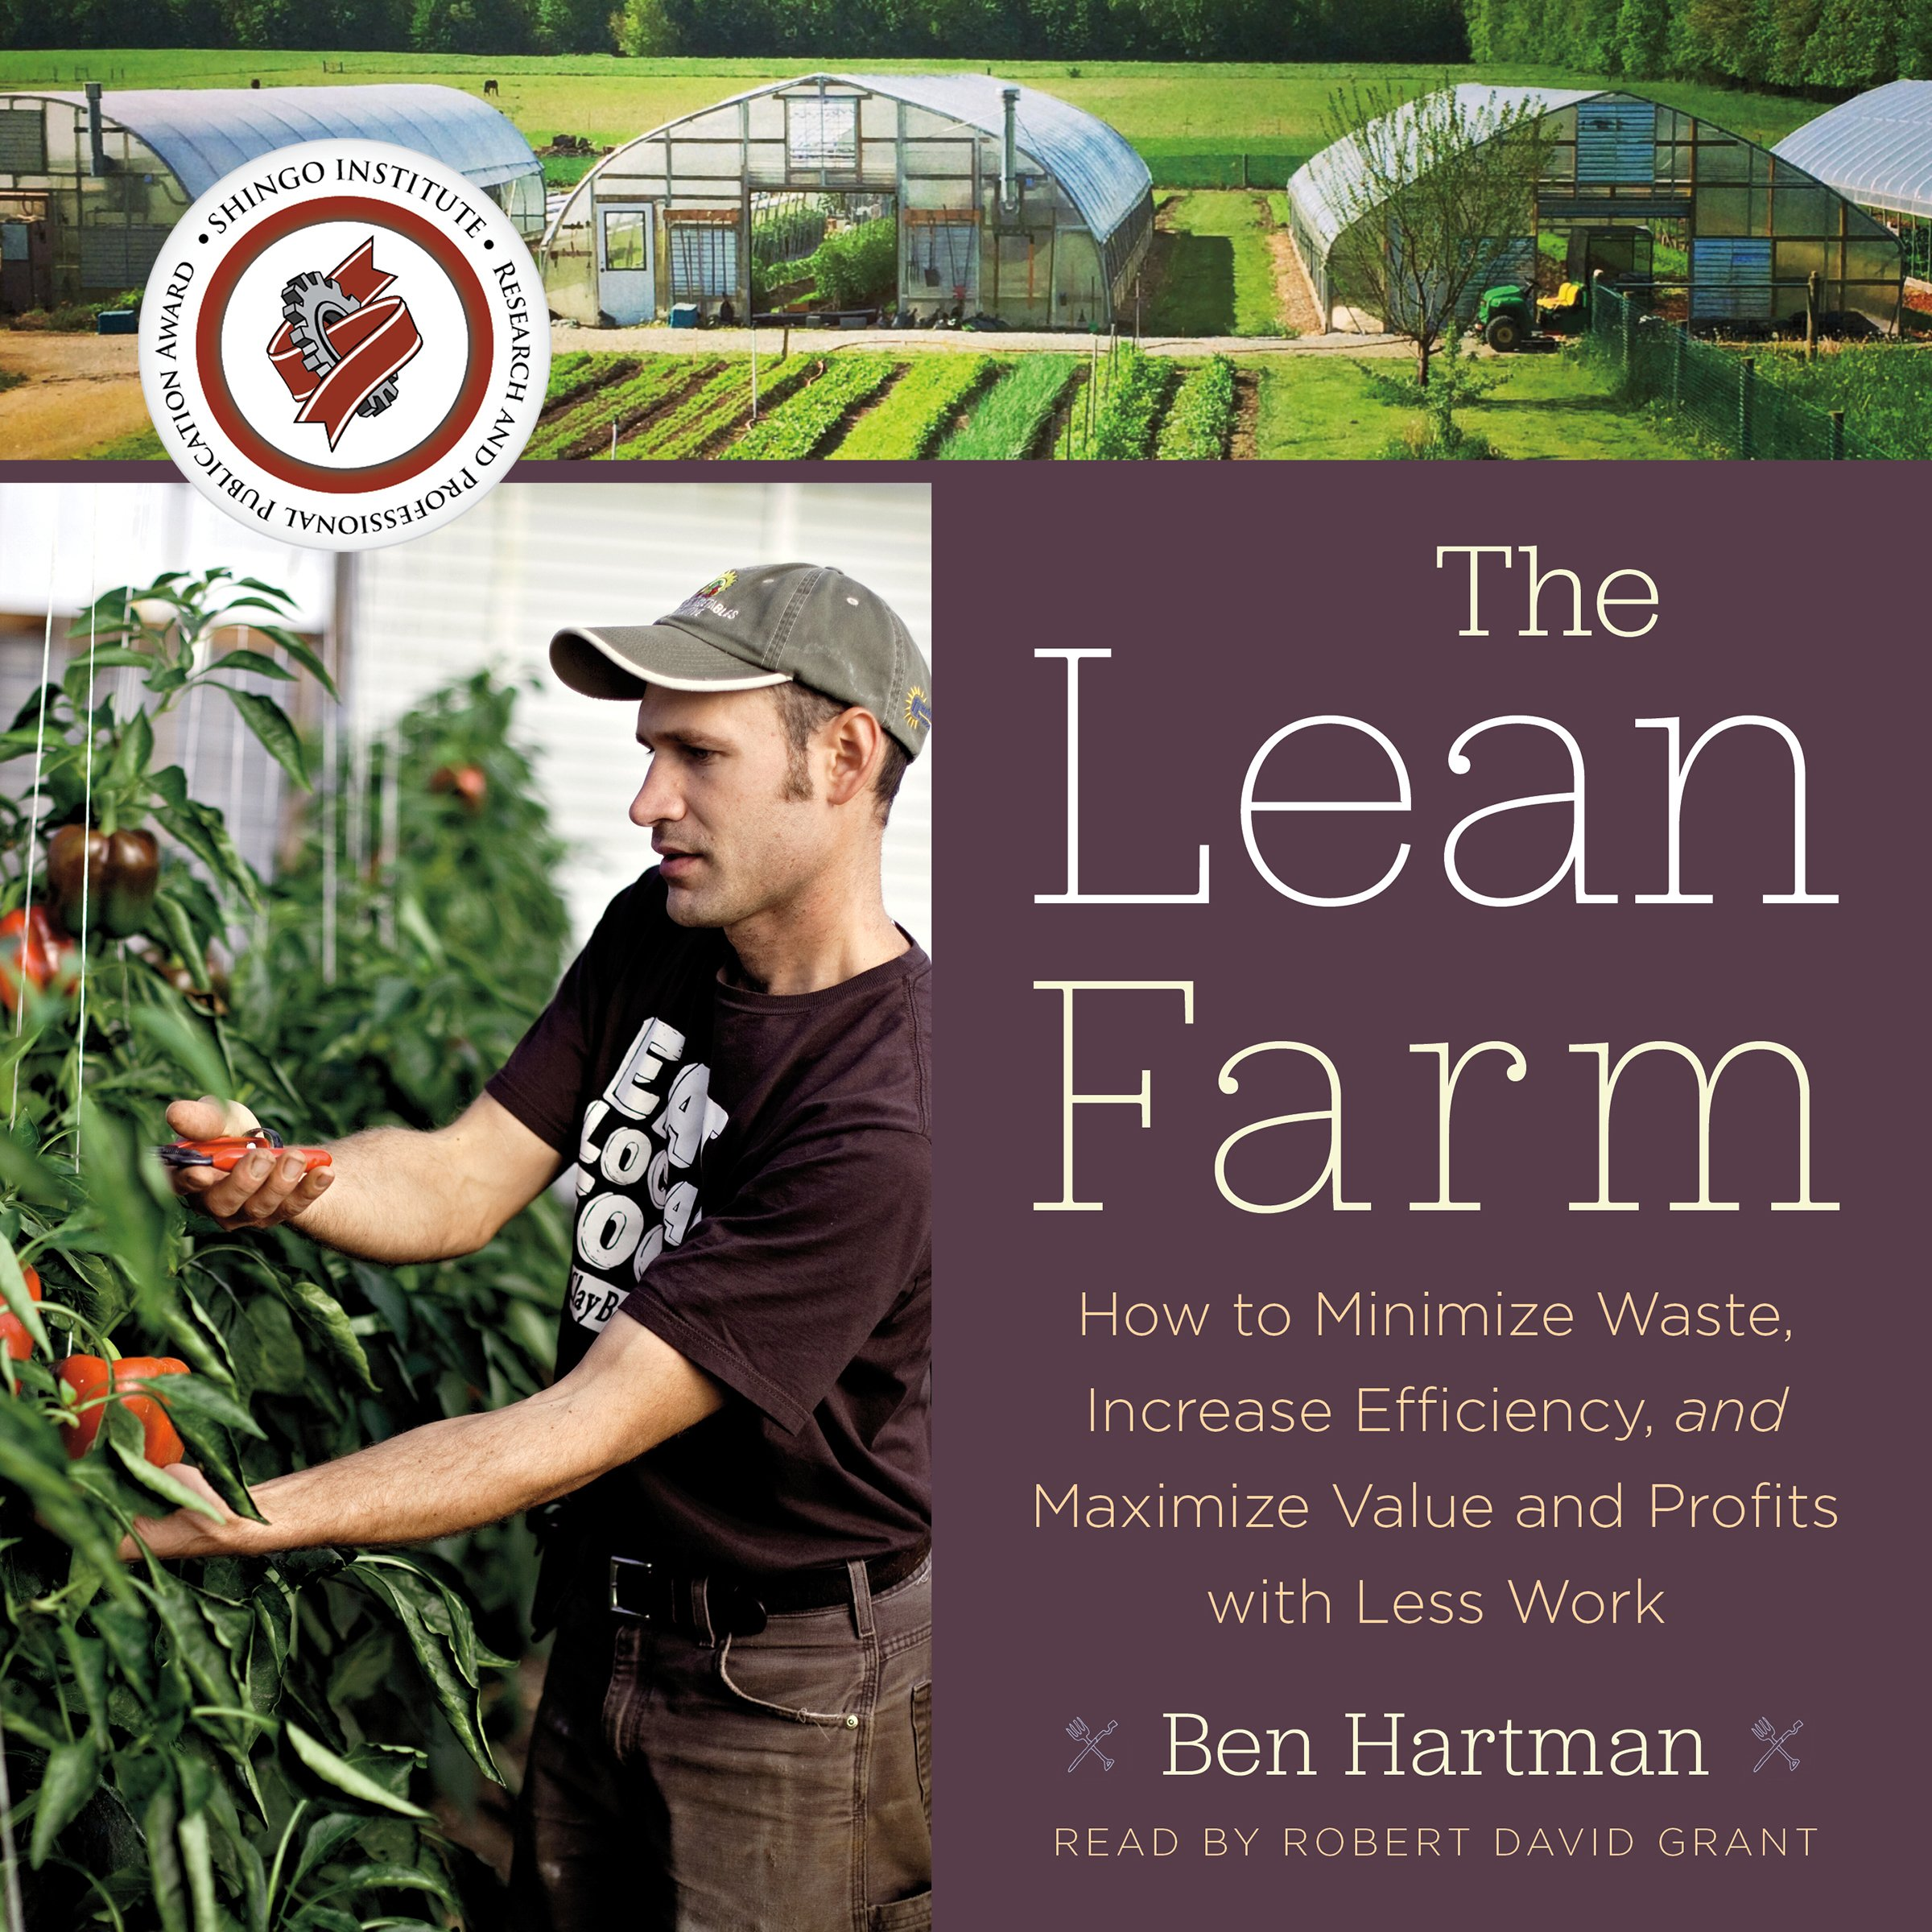 The Lean Farm: How to Minimize Waste, Increase Efficiency, and Maximize Value and Profits with Less Work by Chelsea Green Publishing (Image #1)